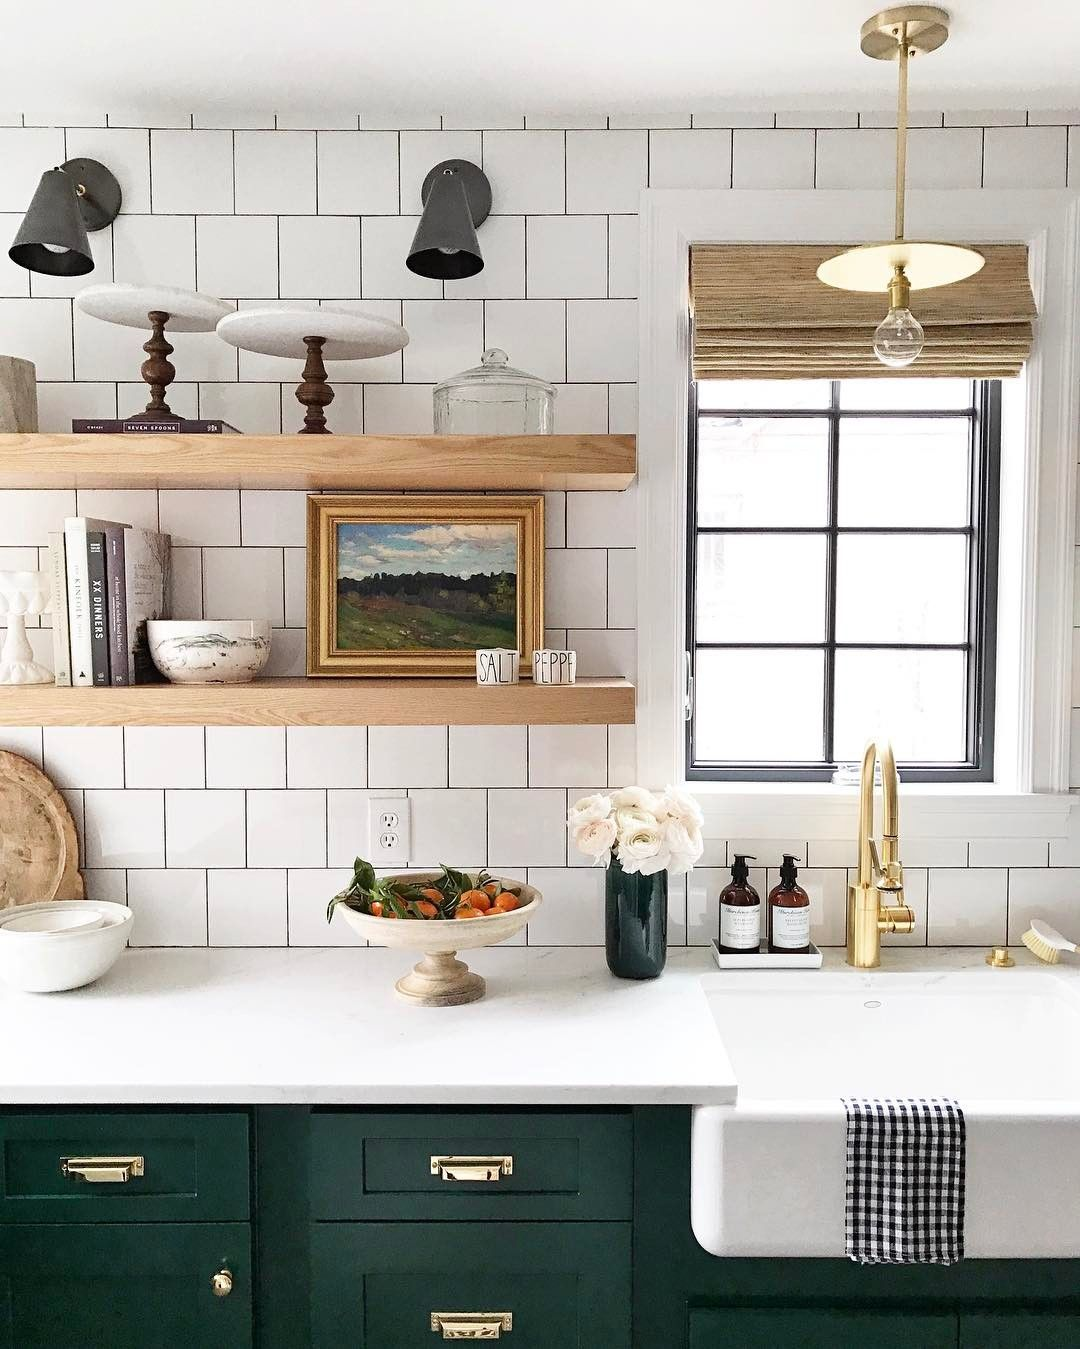 10 instagram accounts to follow for major kitchen design inspo kitchen pinterest green for Interior design instagram hashtags